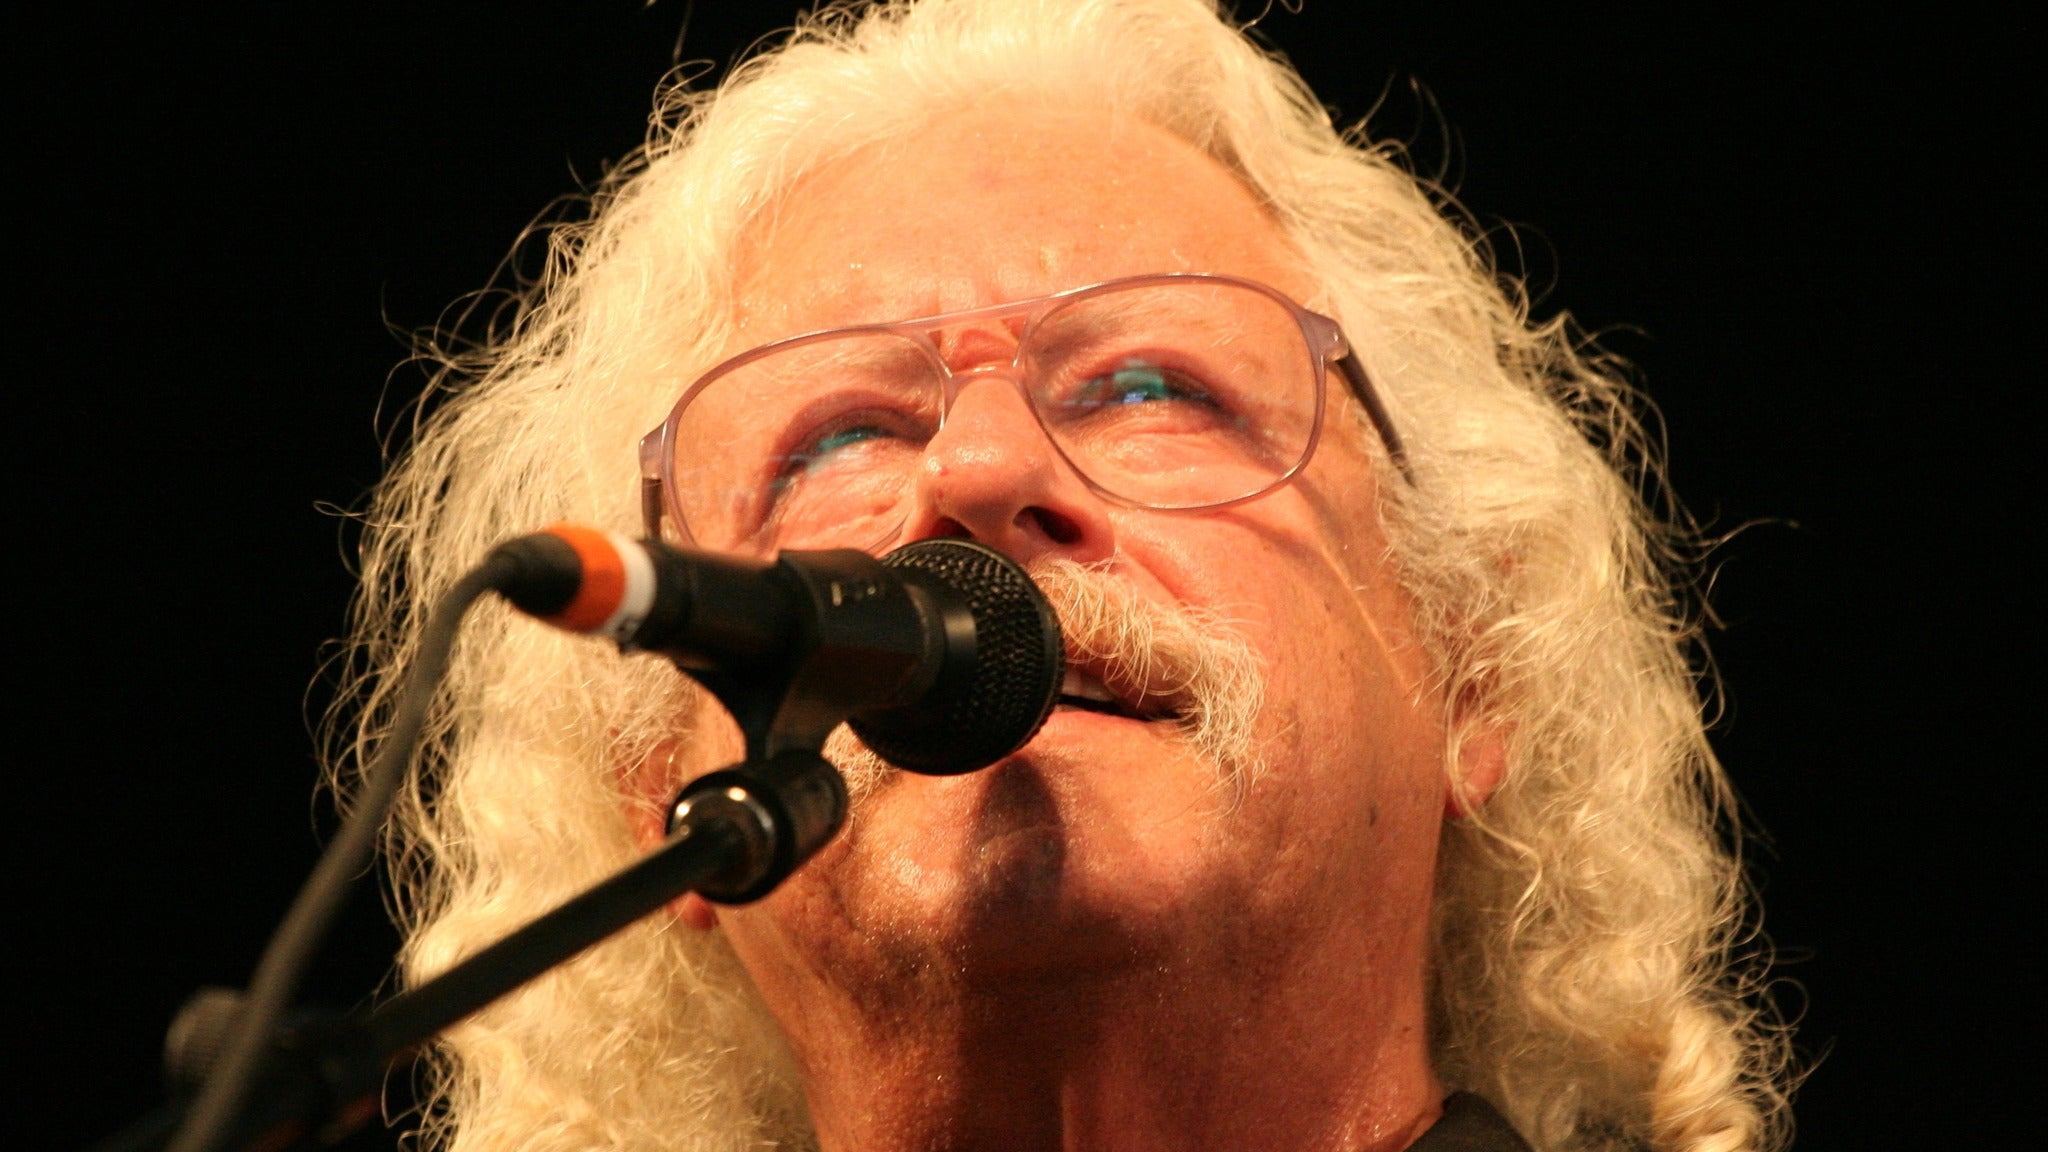 Arlo Guthrie at Count Basie Center for the Arts